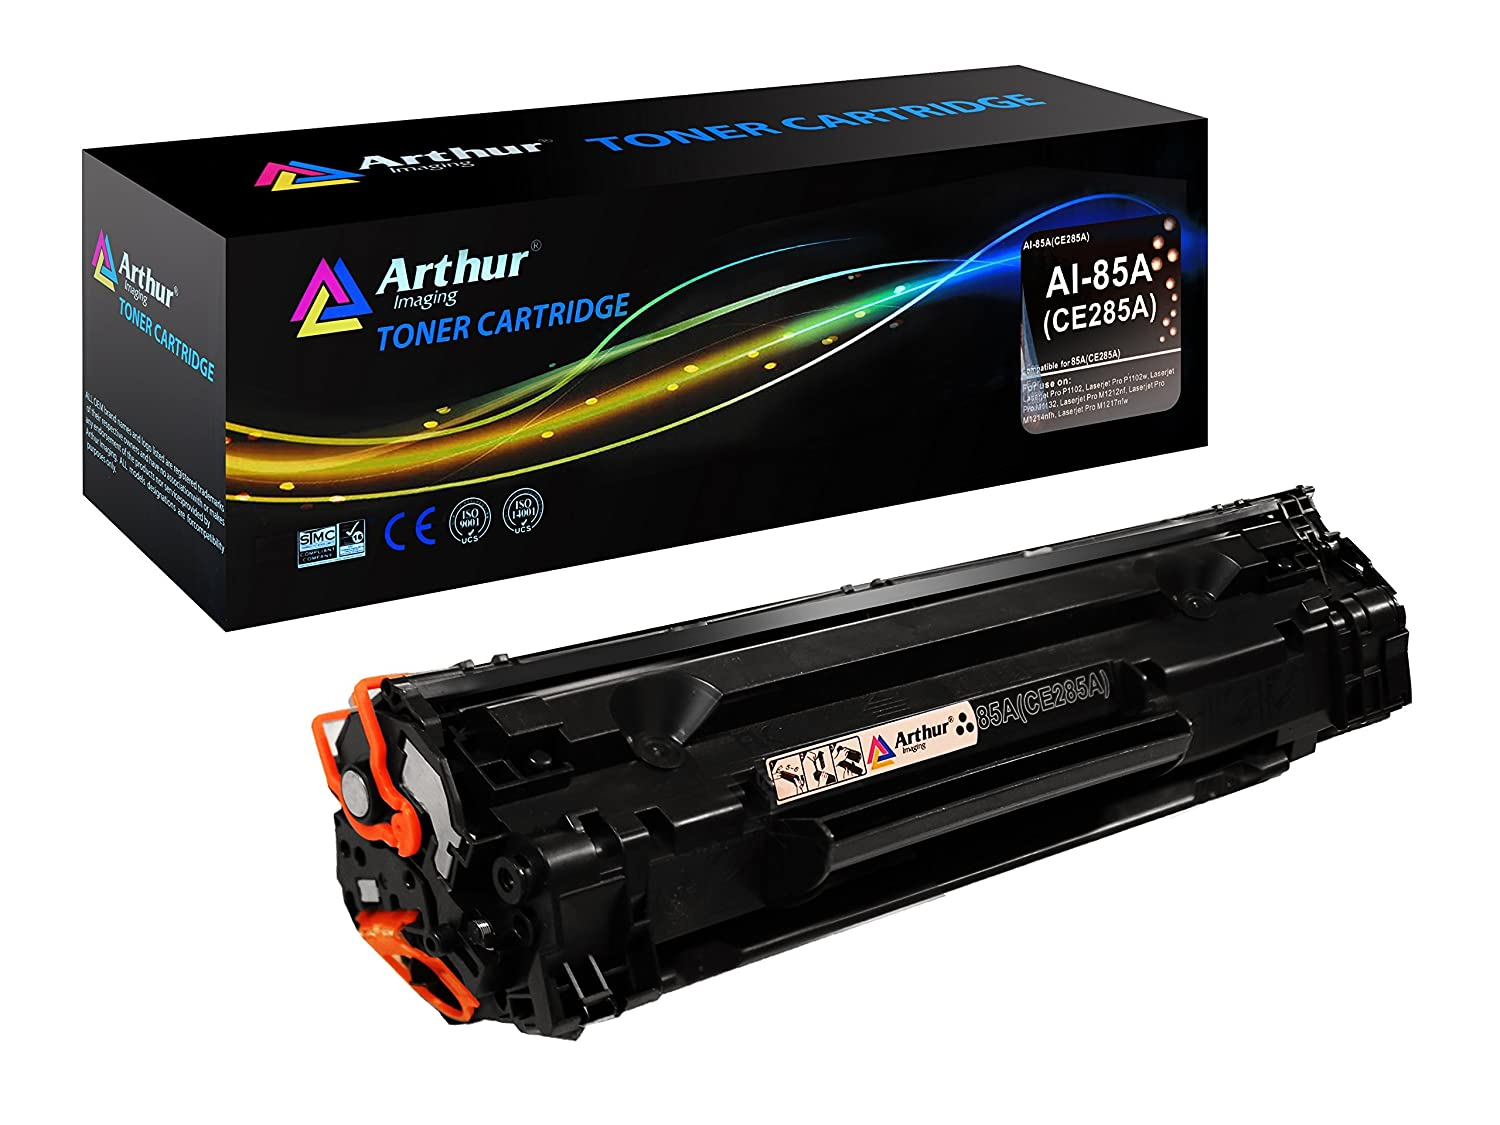 Amazon.com: Arthur Imaging Compatible Toner Cartridge Replacement for  Hewlett Packard CE285A (HP 85A) (Black, 1-Pack): Office Products